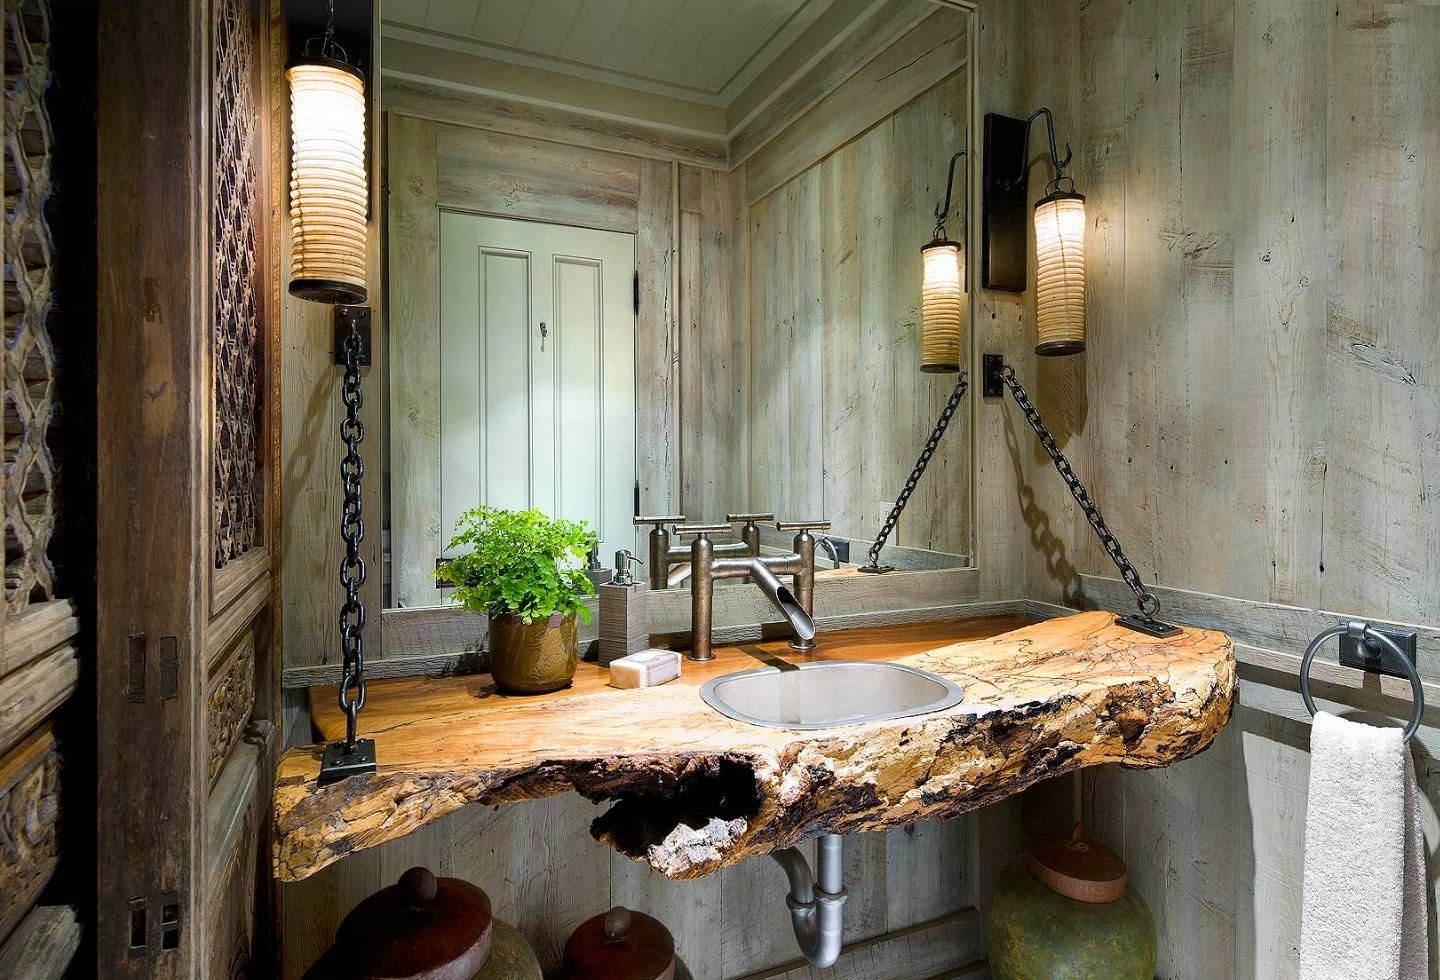 the homely place: Rustic Bathroom Decor Ideas - Guest Post